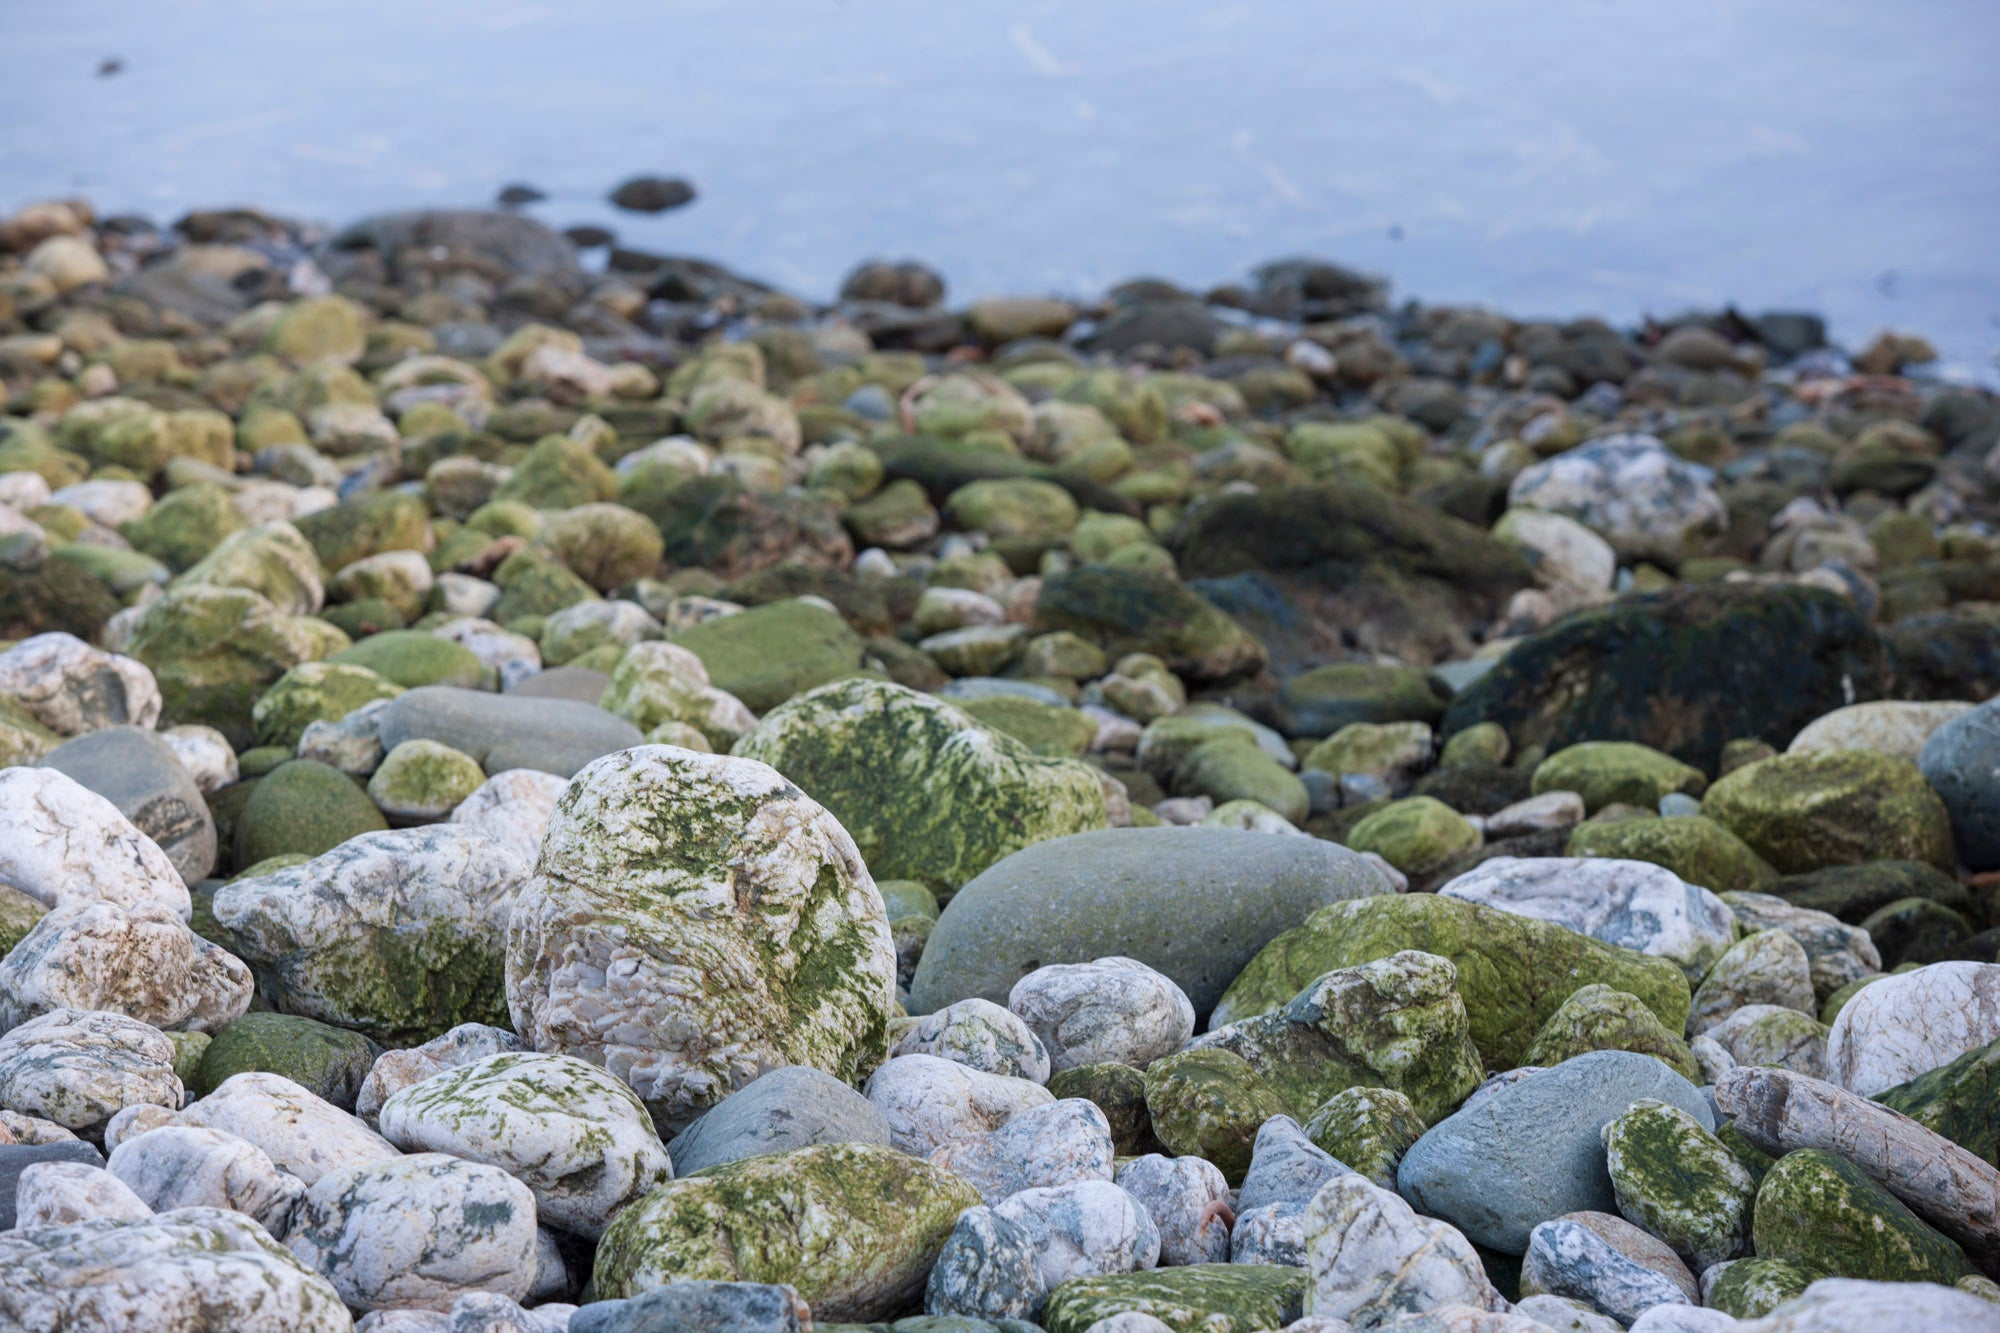 The shore at Hoswick, Shetland - Ebb stanes are revealed by the receding tide